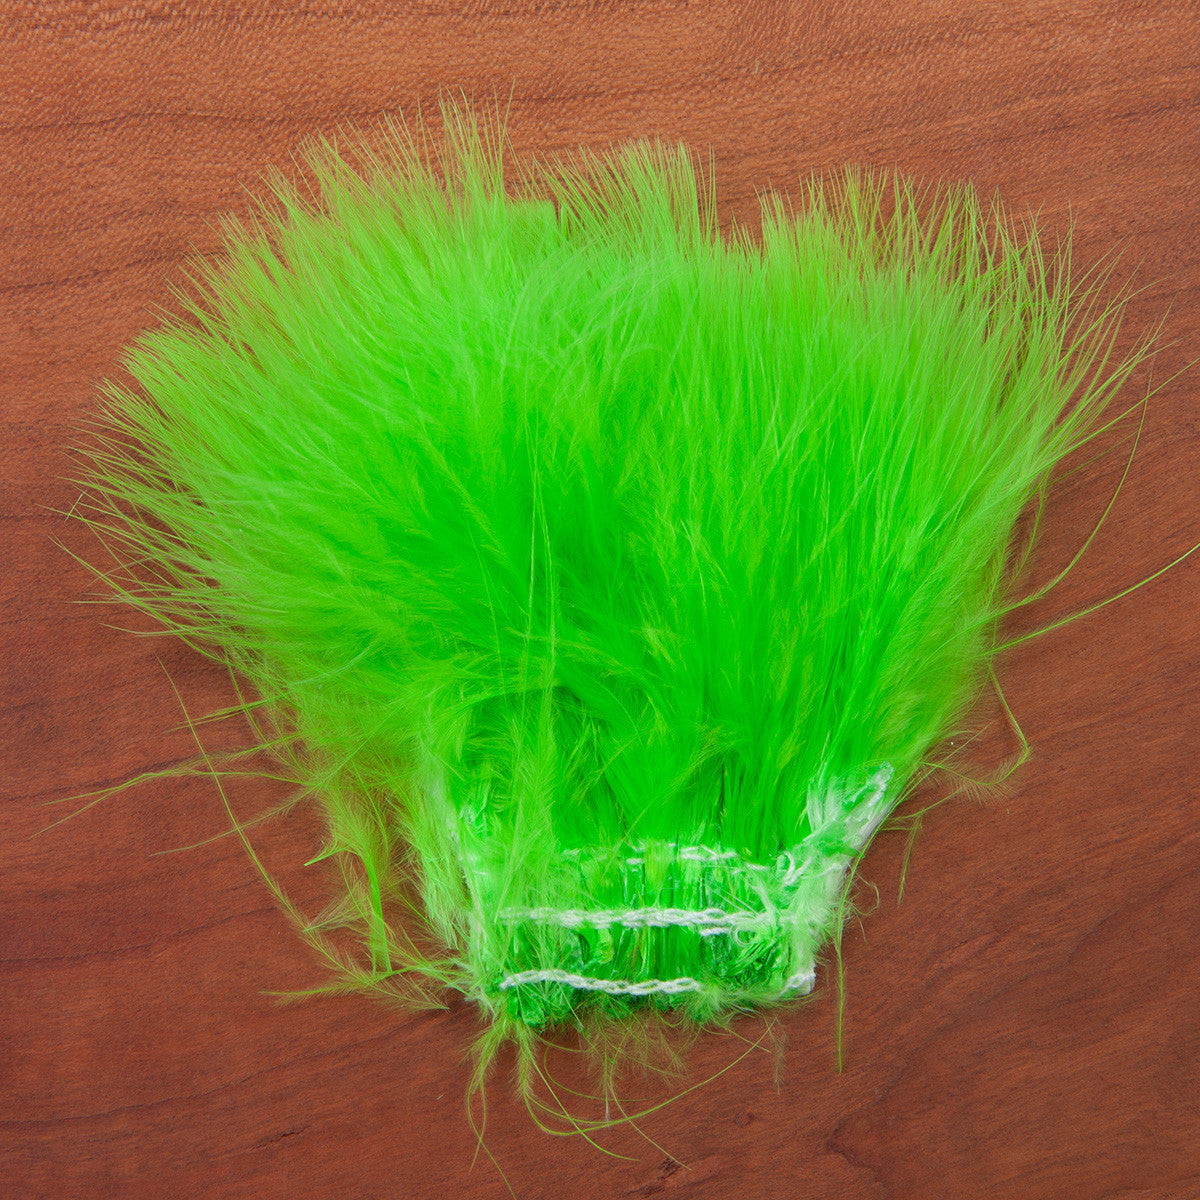 Superfly Spey Popsicle Marabou